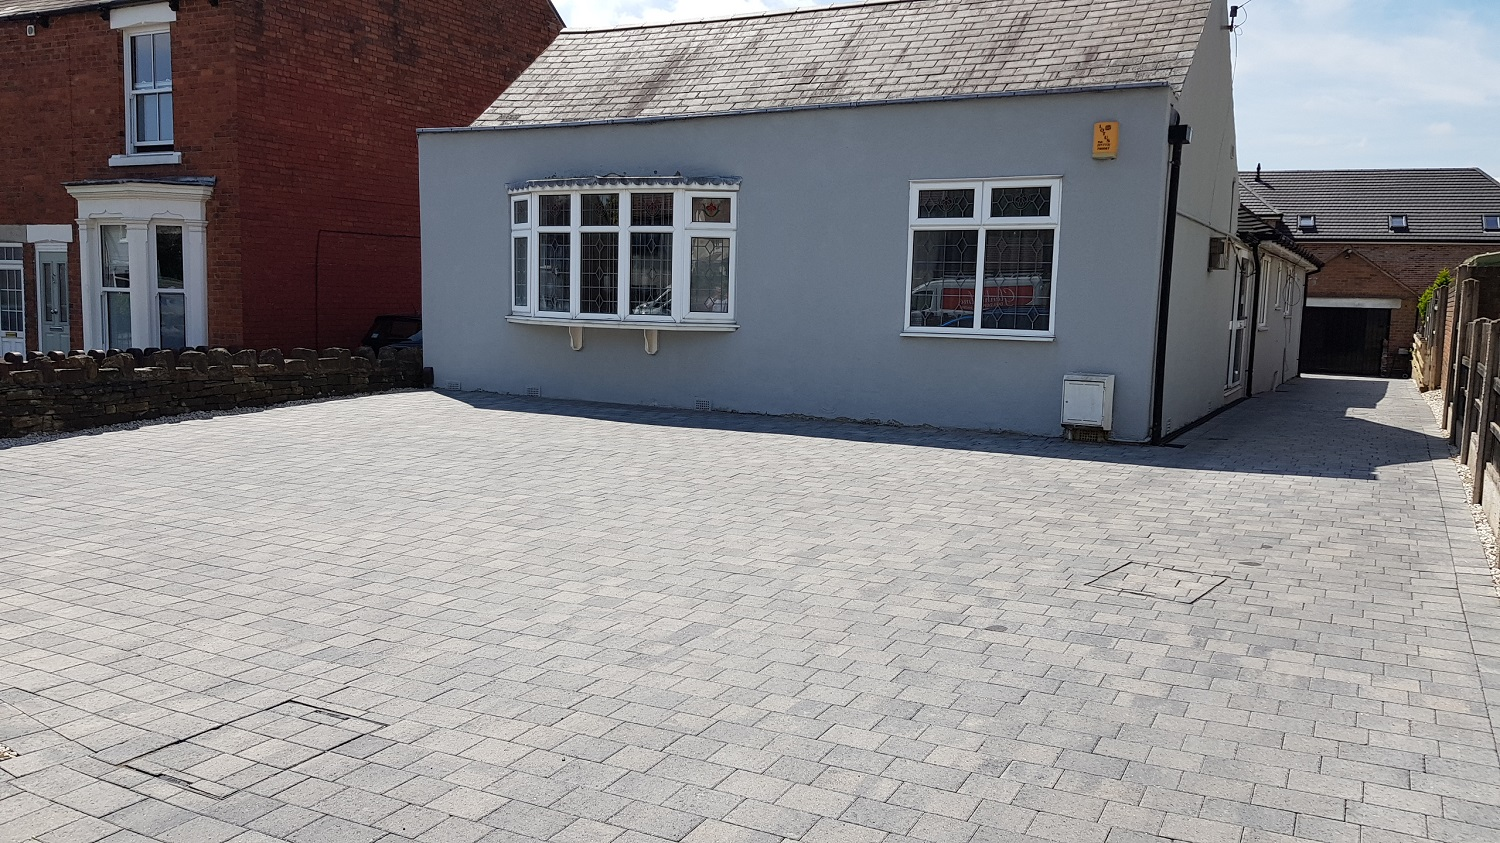 C29 Plaspave Modena Granite Stone Block Paving Driveway at Newbold in Chesterfield